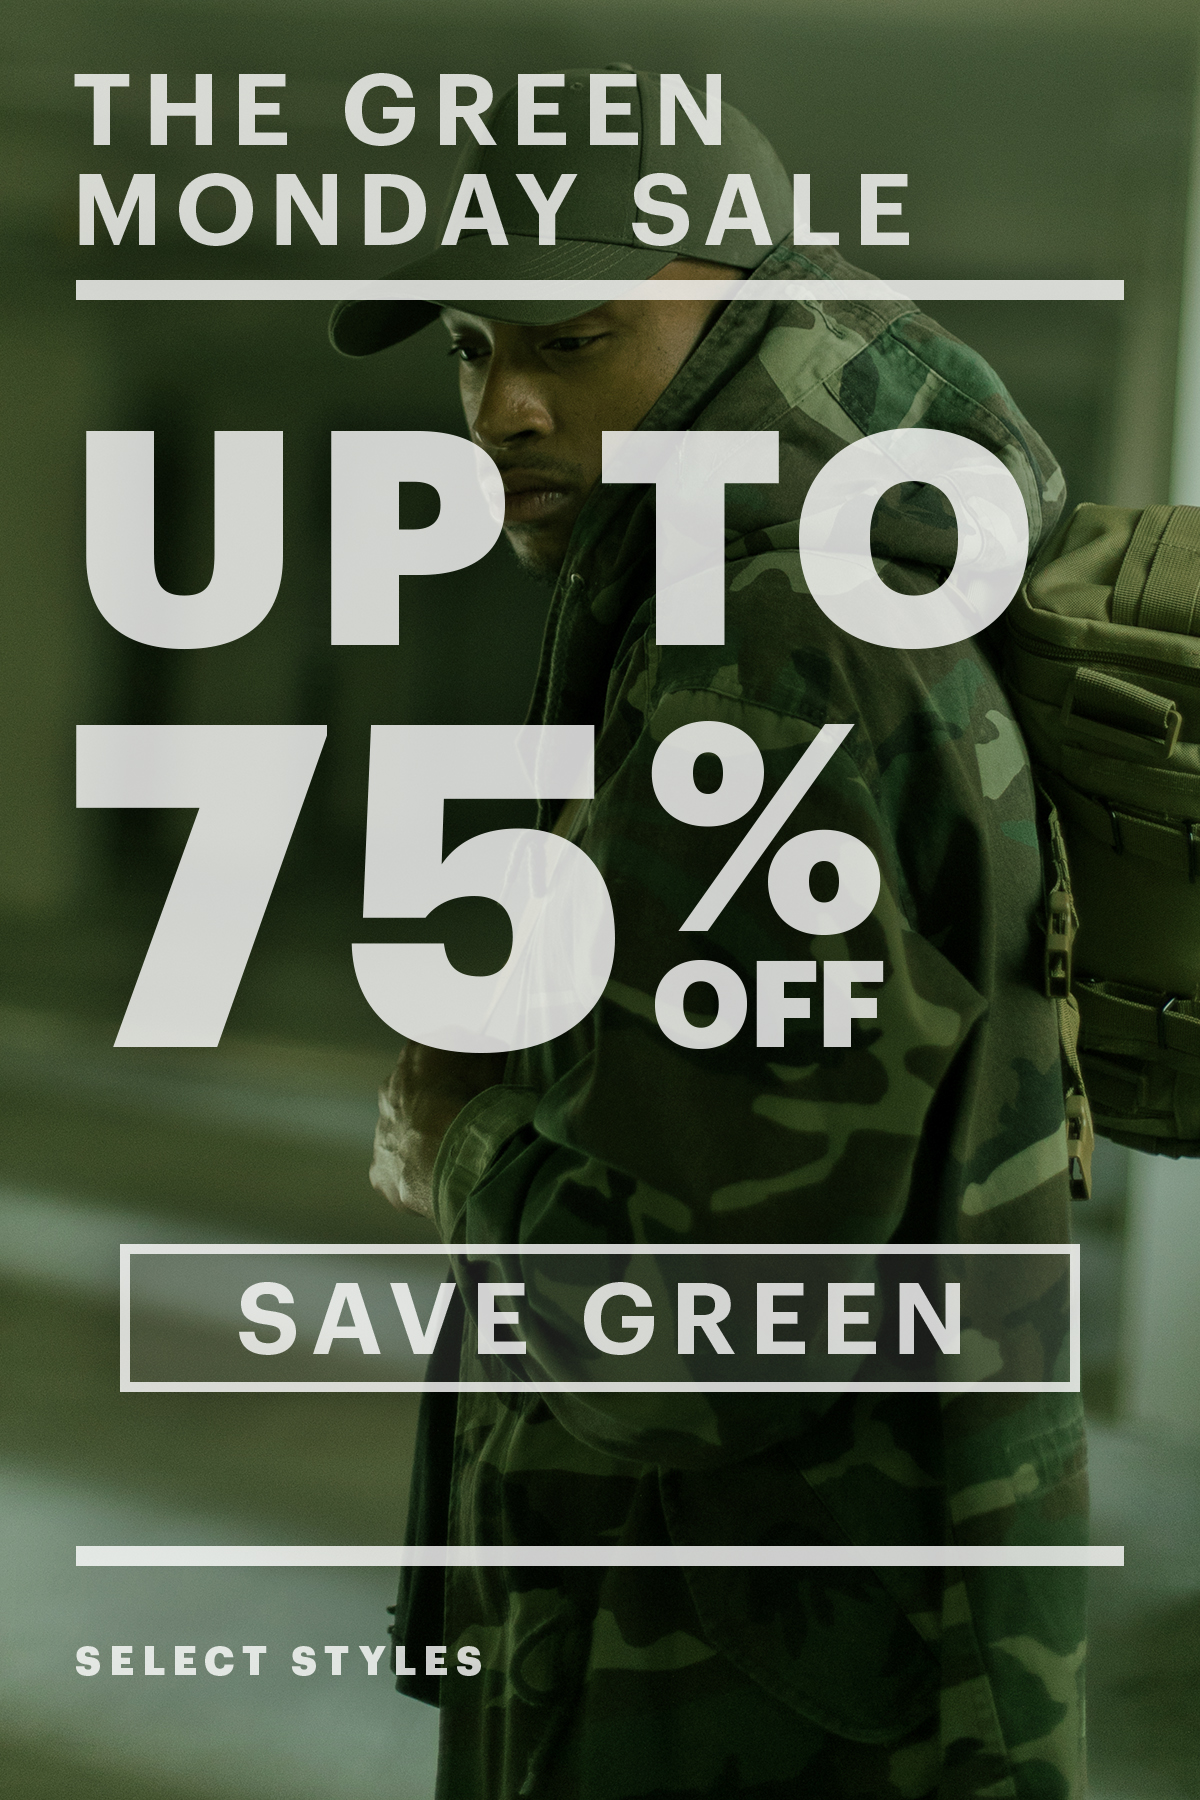 Up To 75% Off! Green Monday